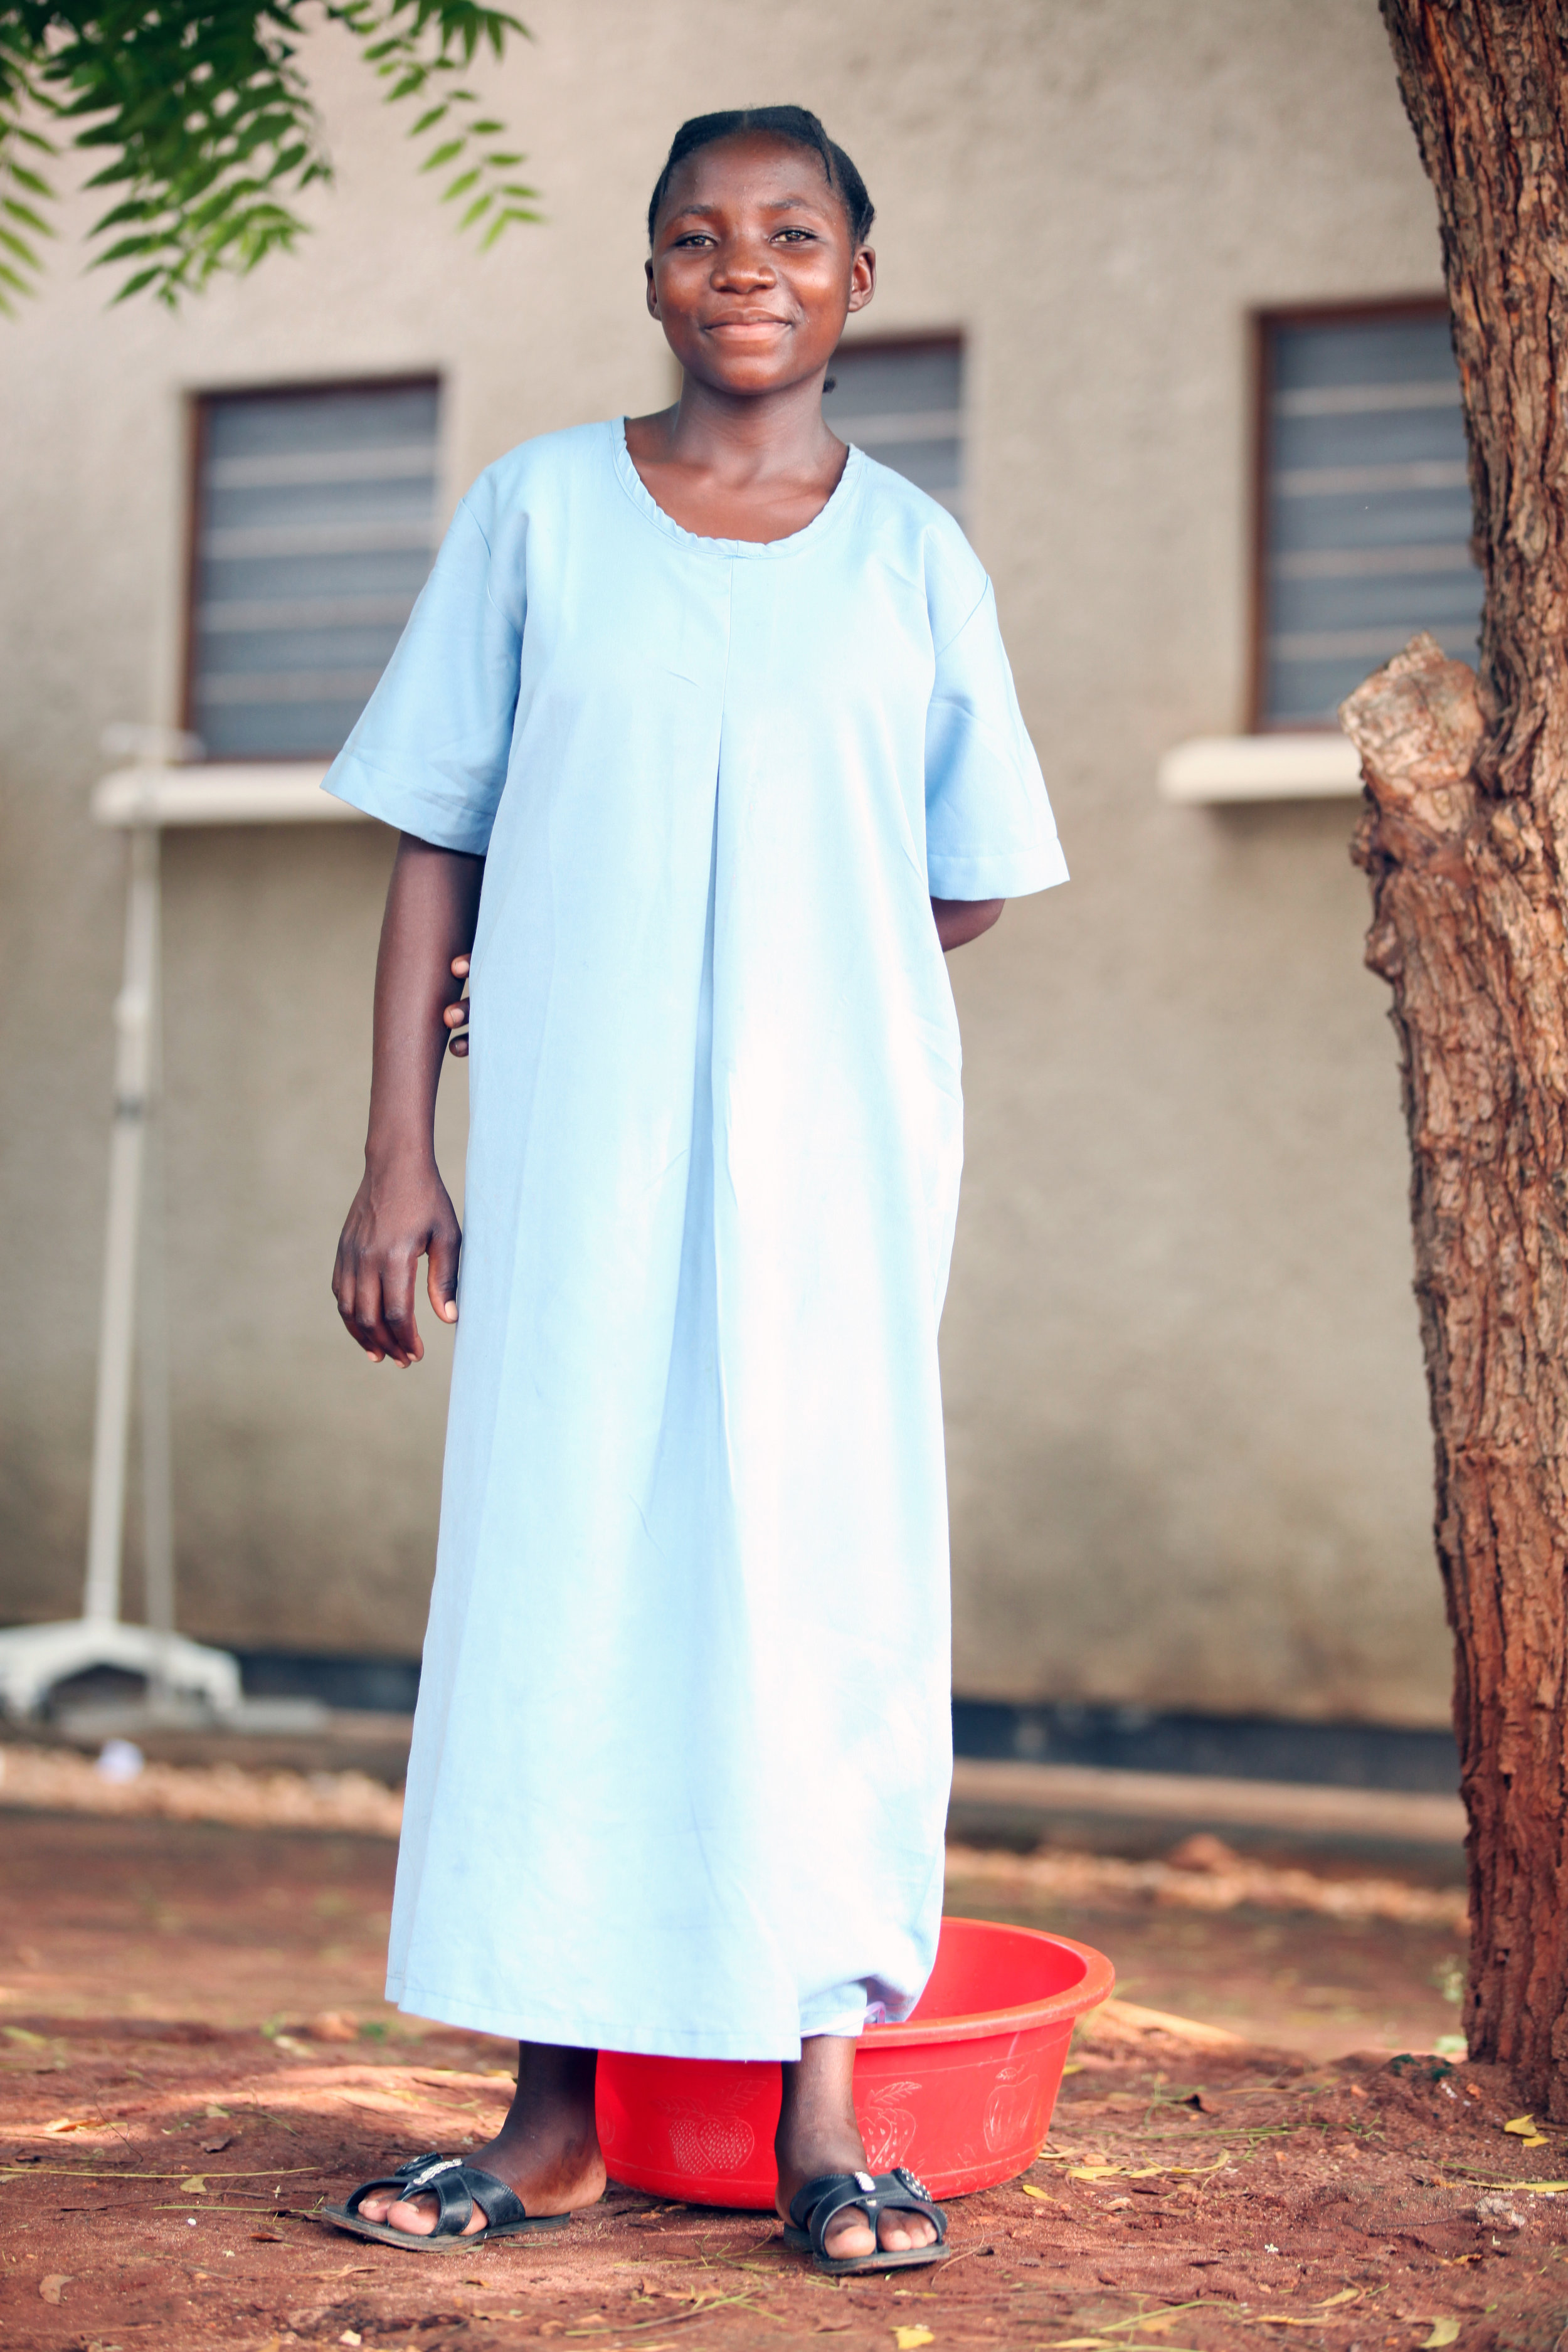 Recovering from fistula surgery. Photo credit: Benjamin Eagle